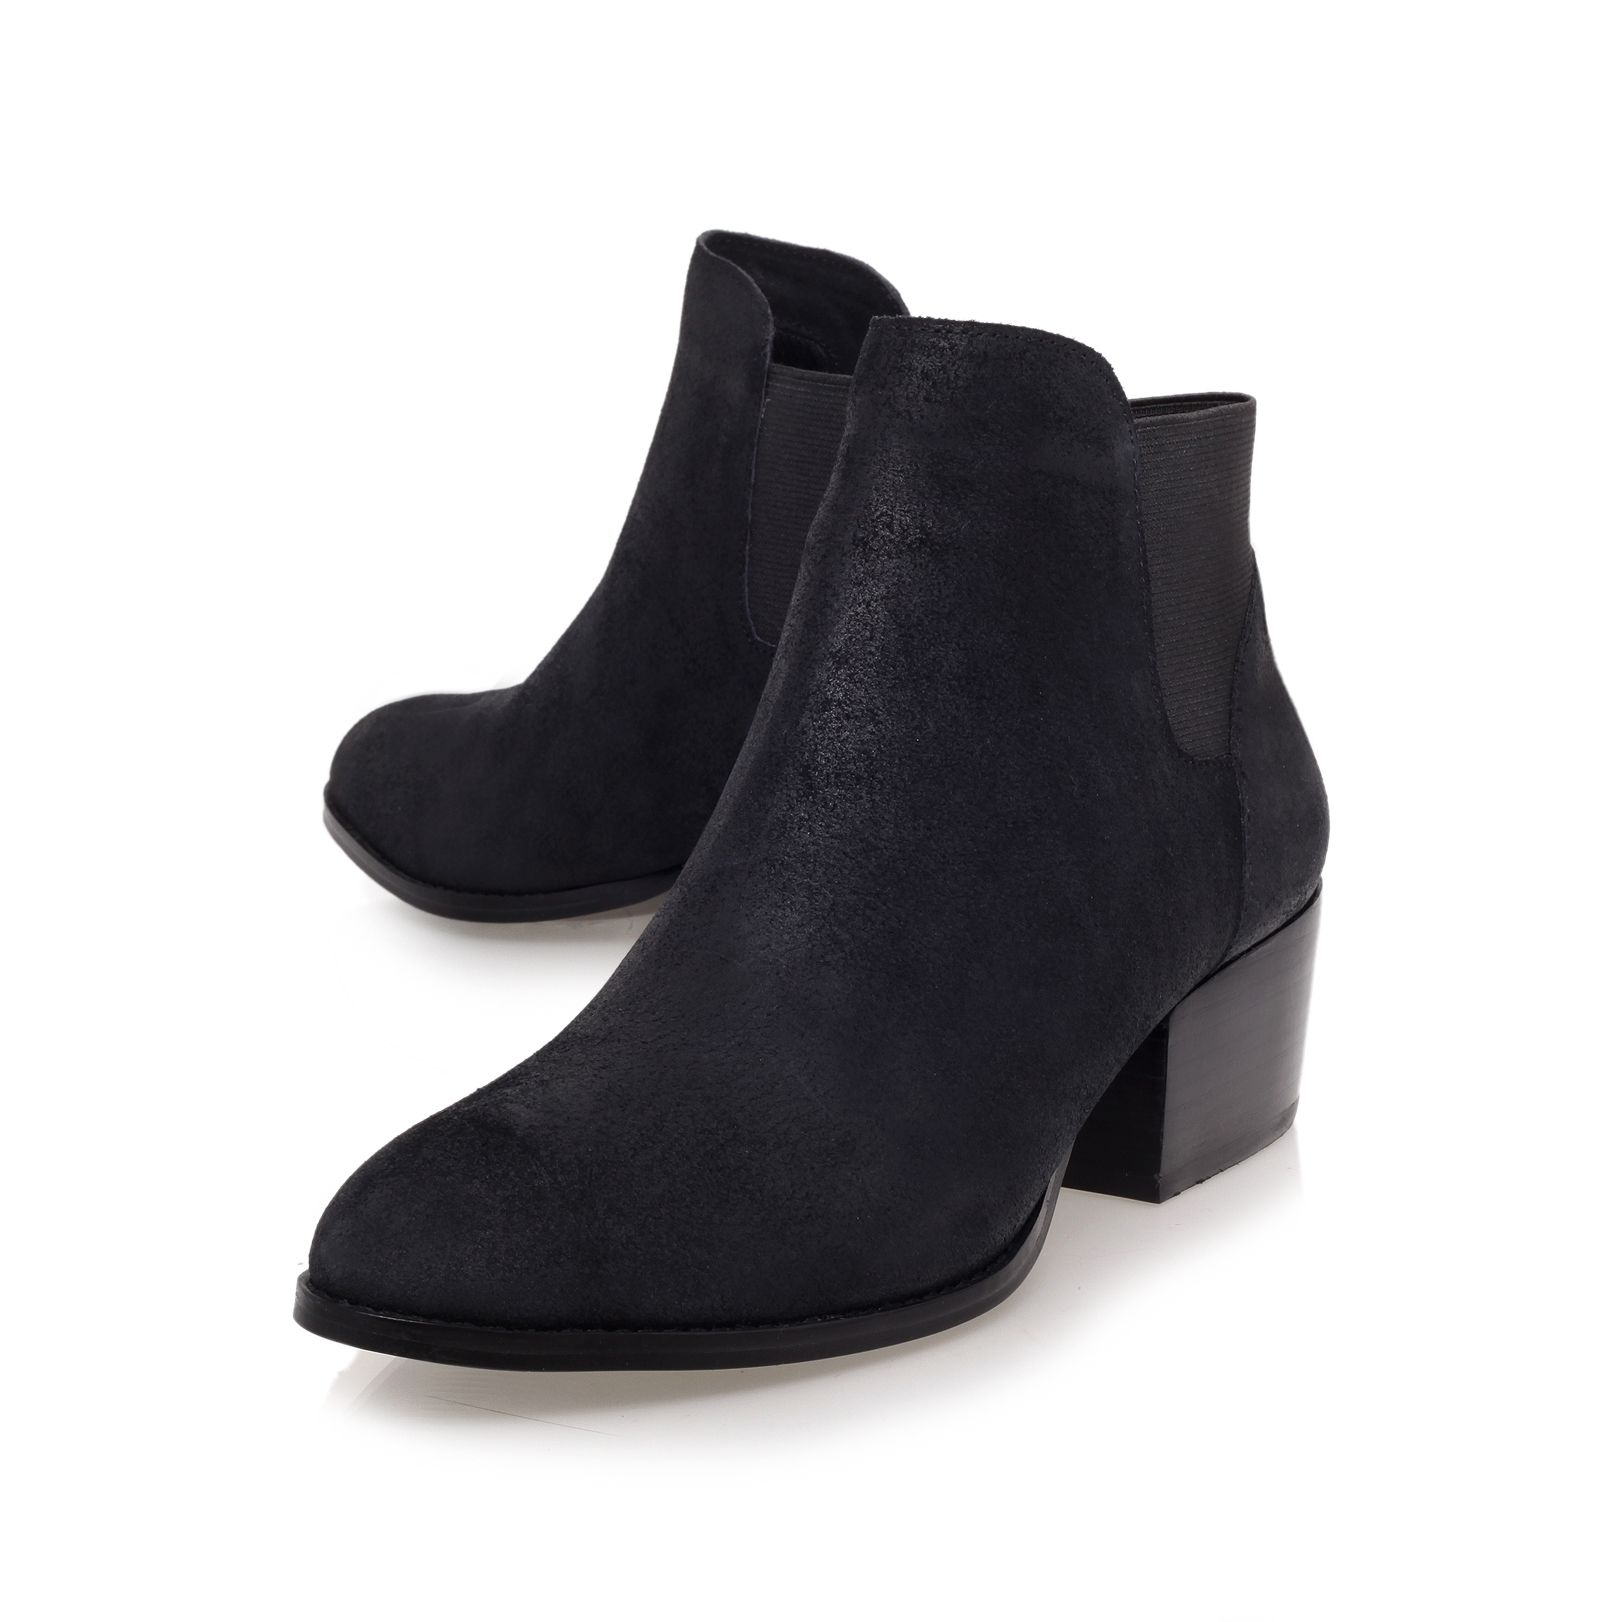 Scout low heel ankle boots